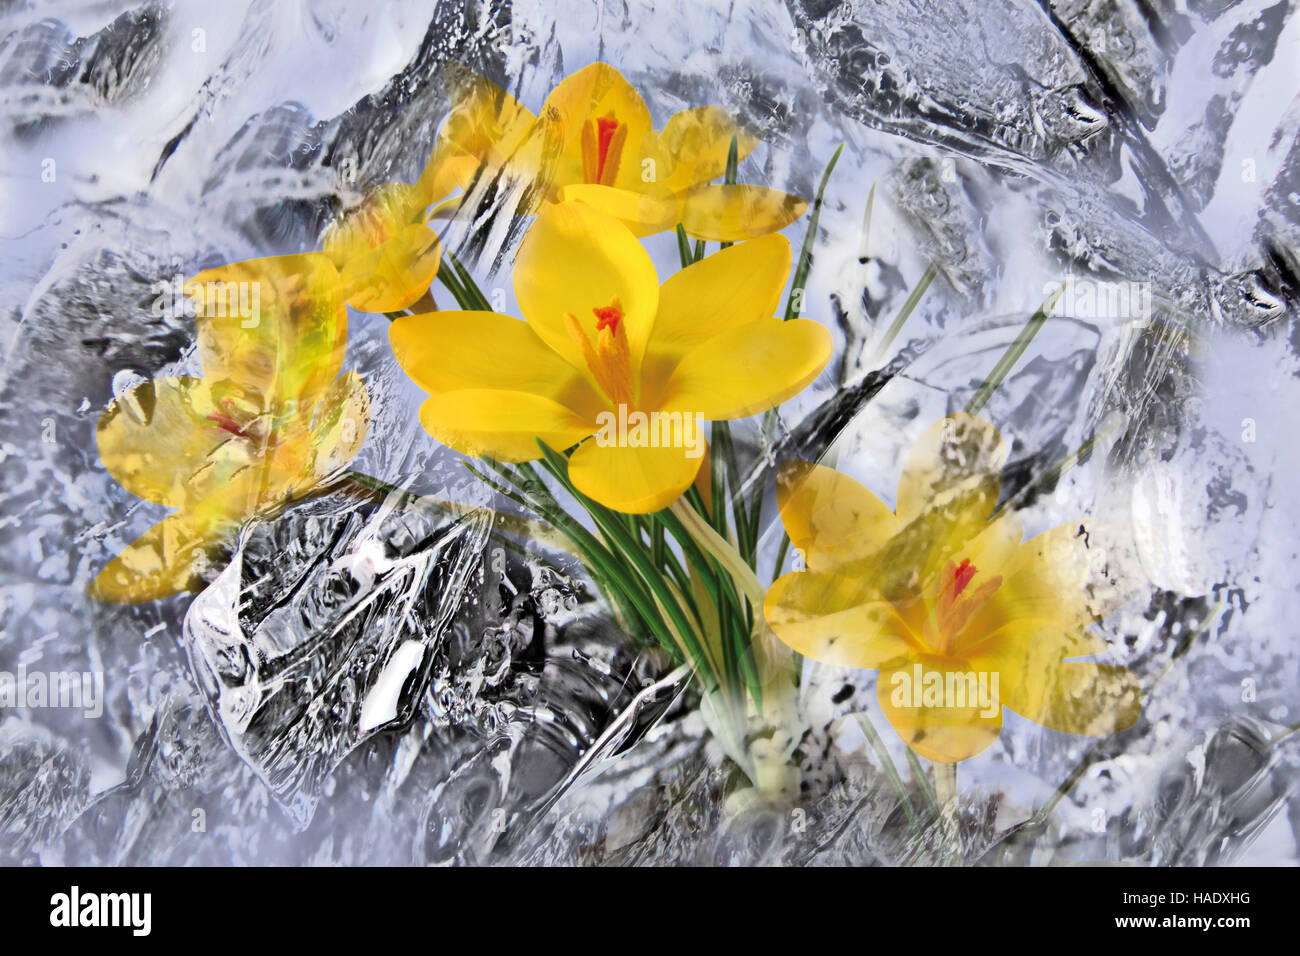 Crocuses enveloped in ice - Stock Image